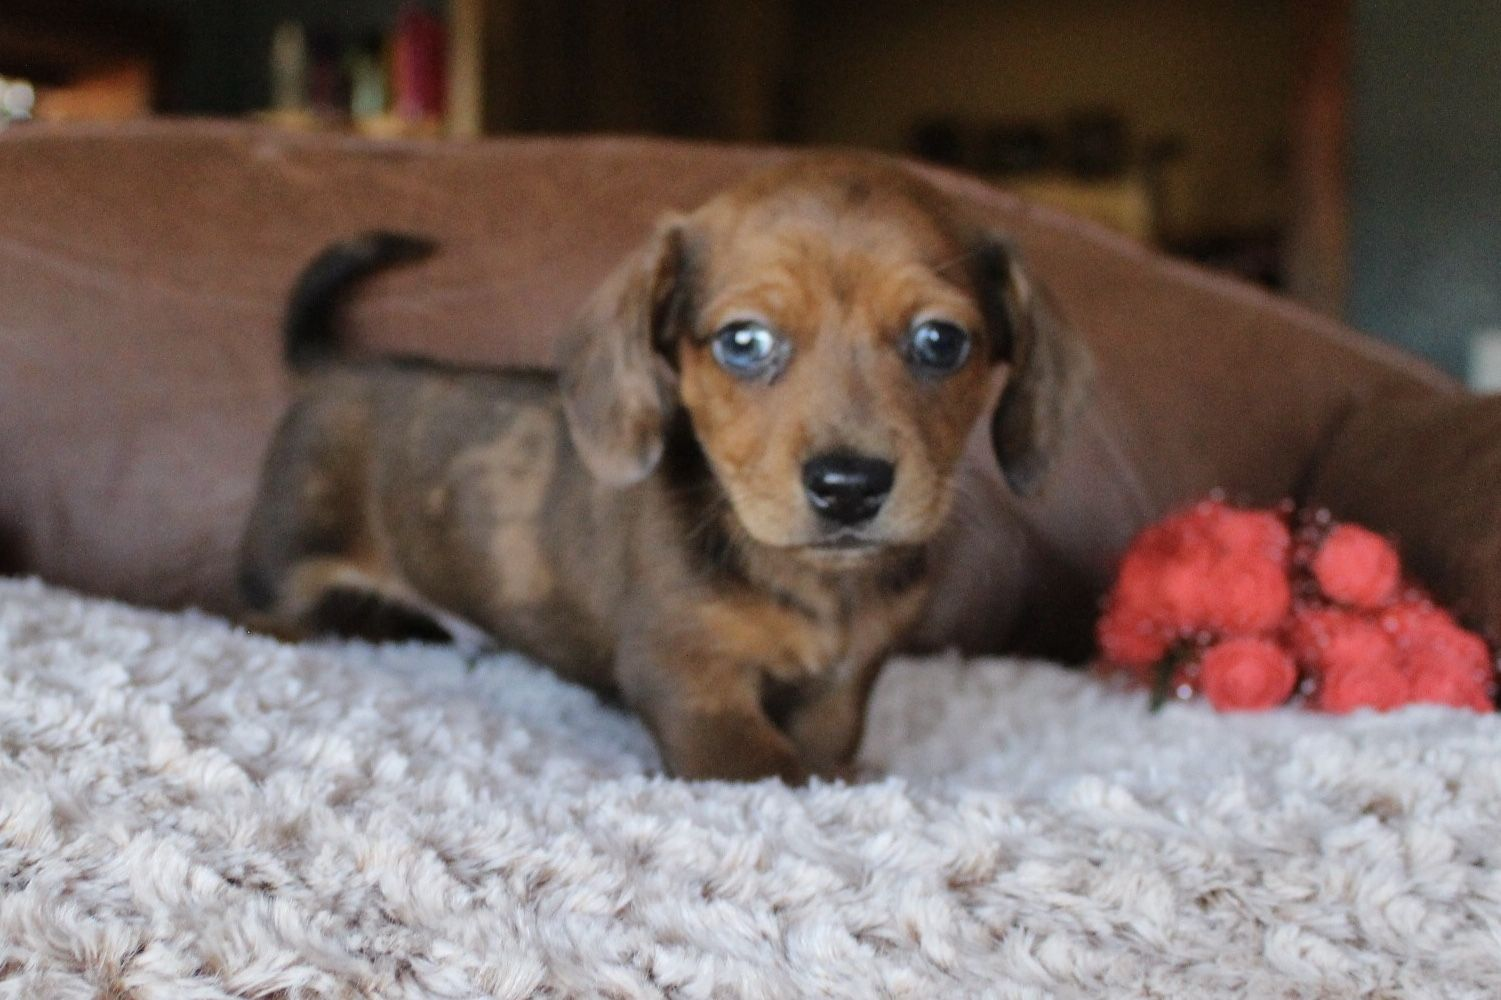 Red Dapple Shorthair Miniature Dachshund Puppy At Muddy River Dachshunds Dachshund Puppies Dachshund Puppy Miniature Dachshund